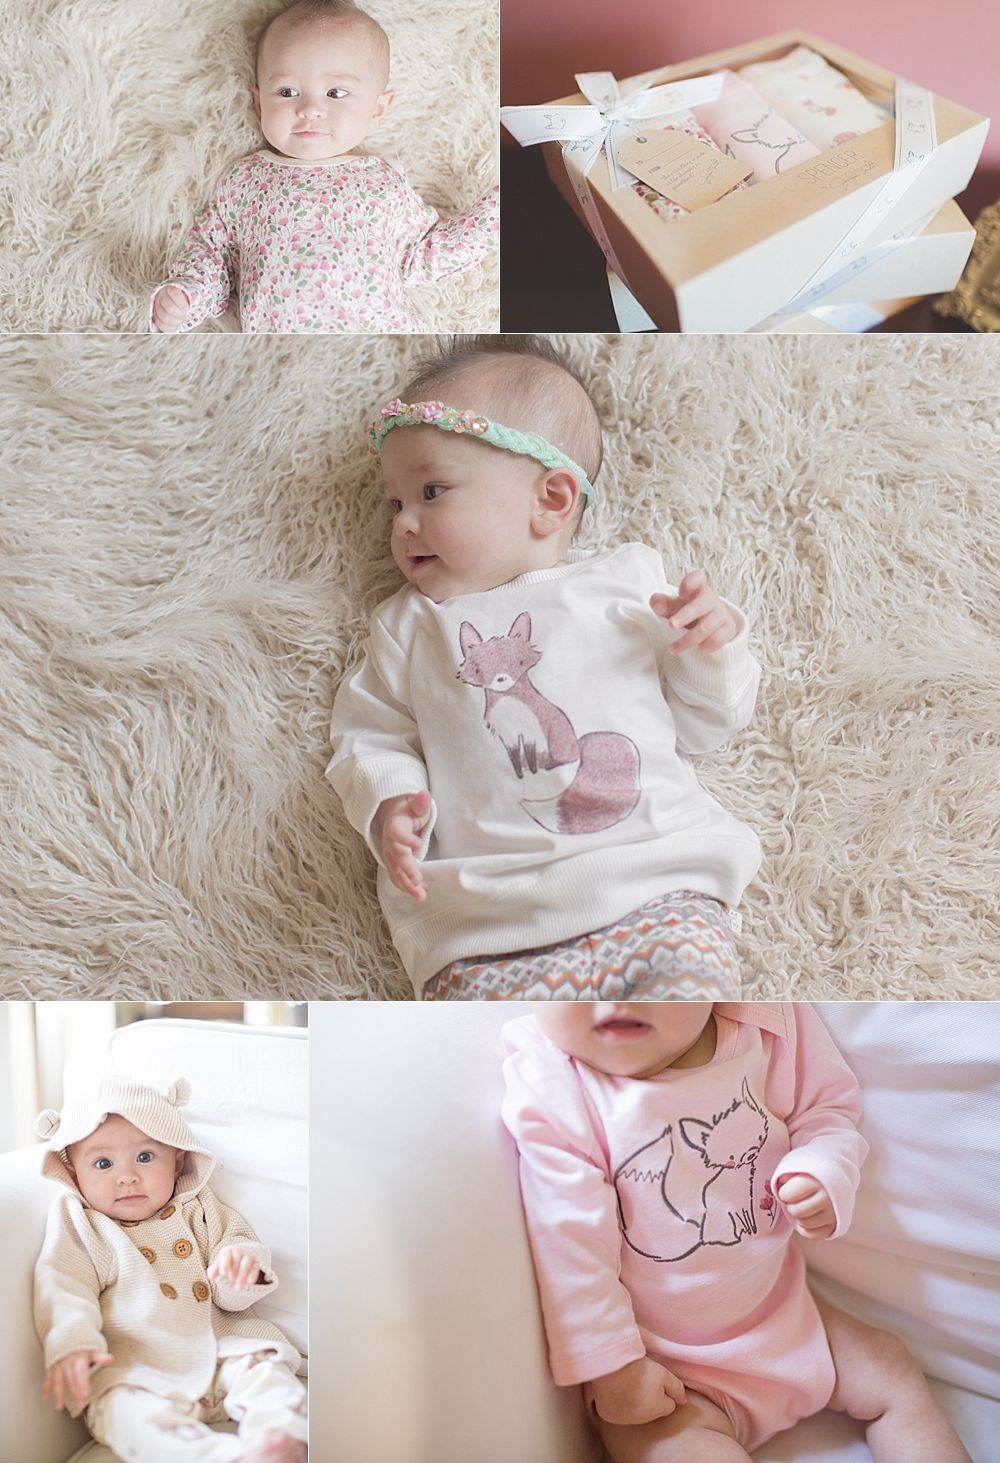 56f9d184ba26f Adorable baby outfits for fall. Loving this adorable outfit from @Kmart  Jaclyn Smith Spencer collection. Loving the whimsical prints with a fall,  ...